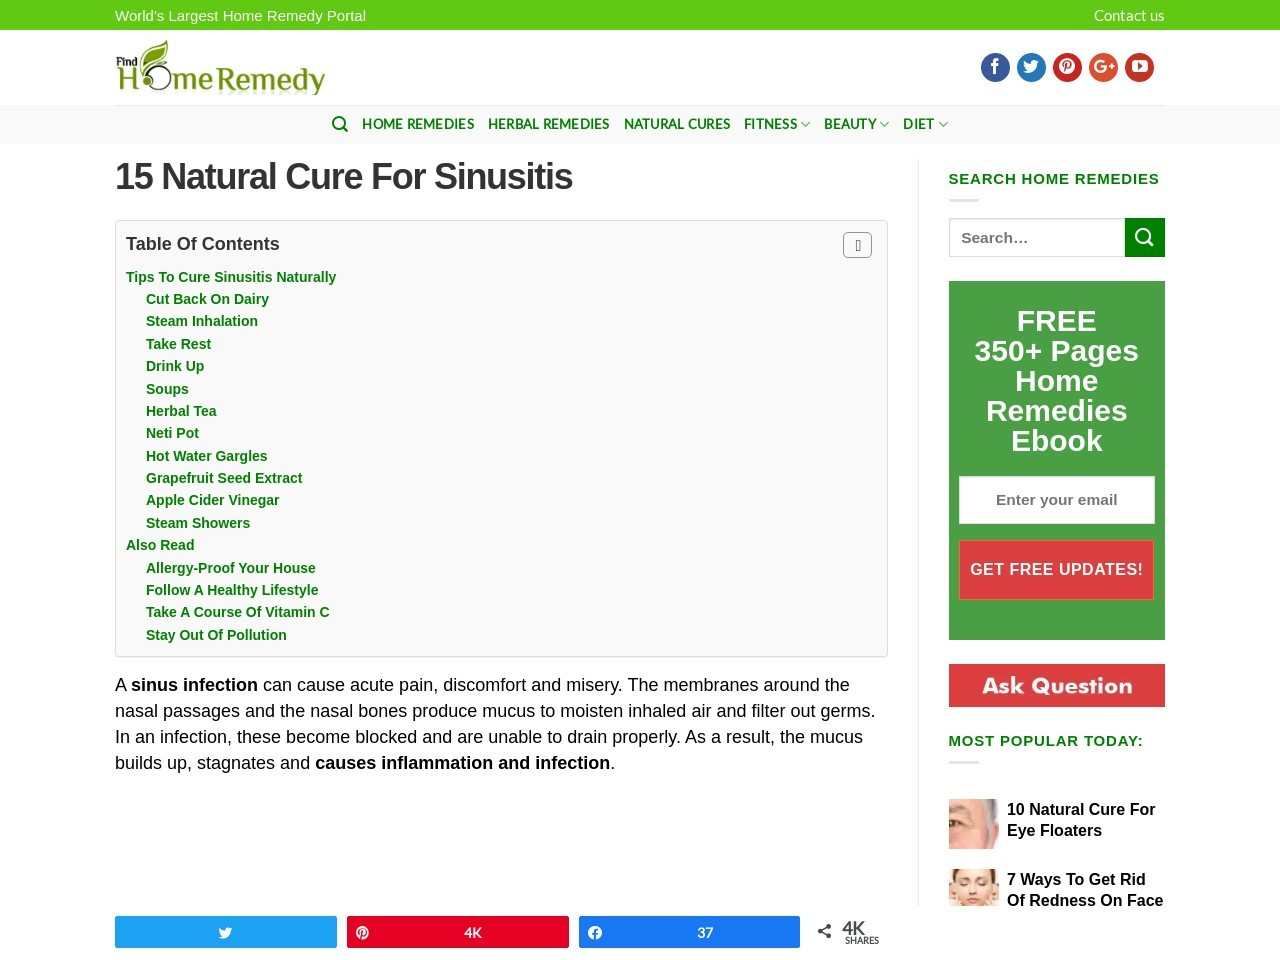 15 Natural Cure For Sinusitis – Home Remedies and